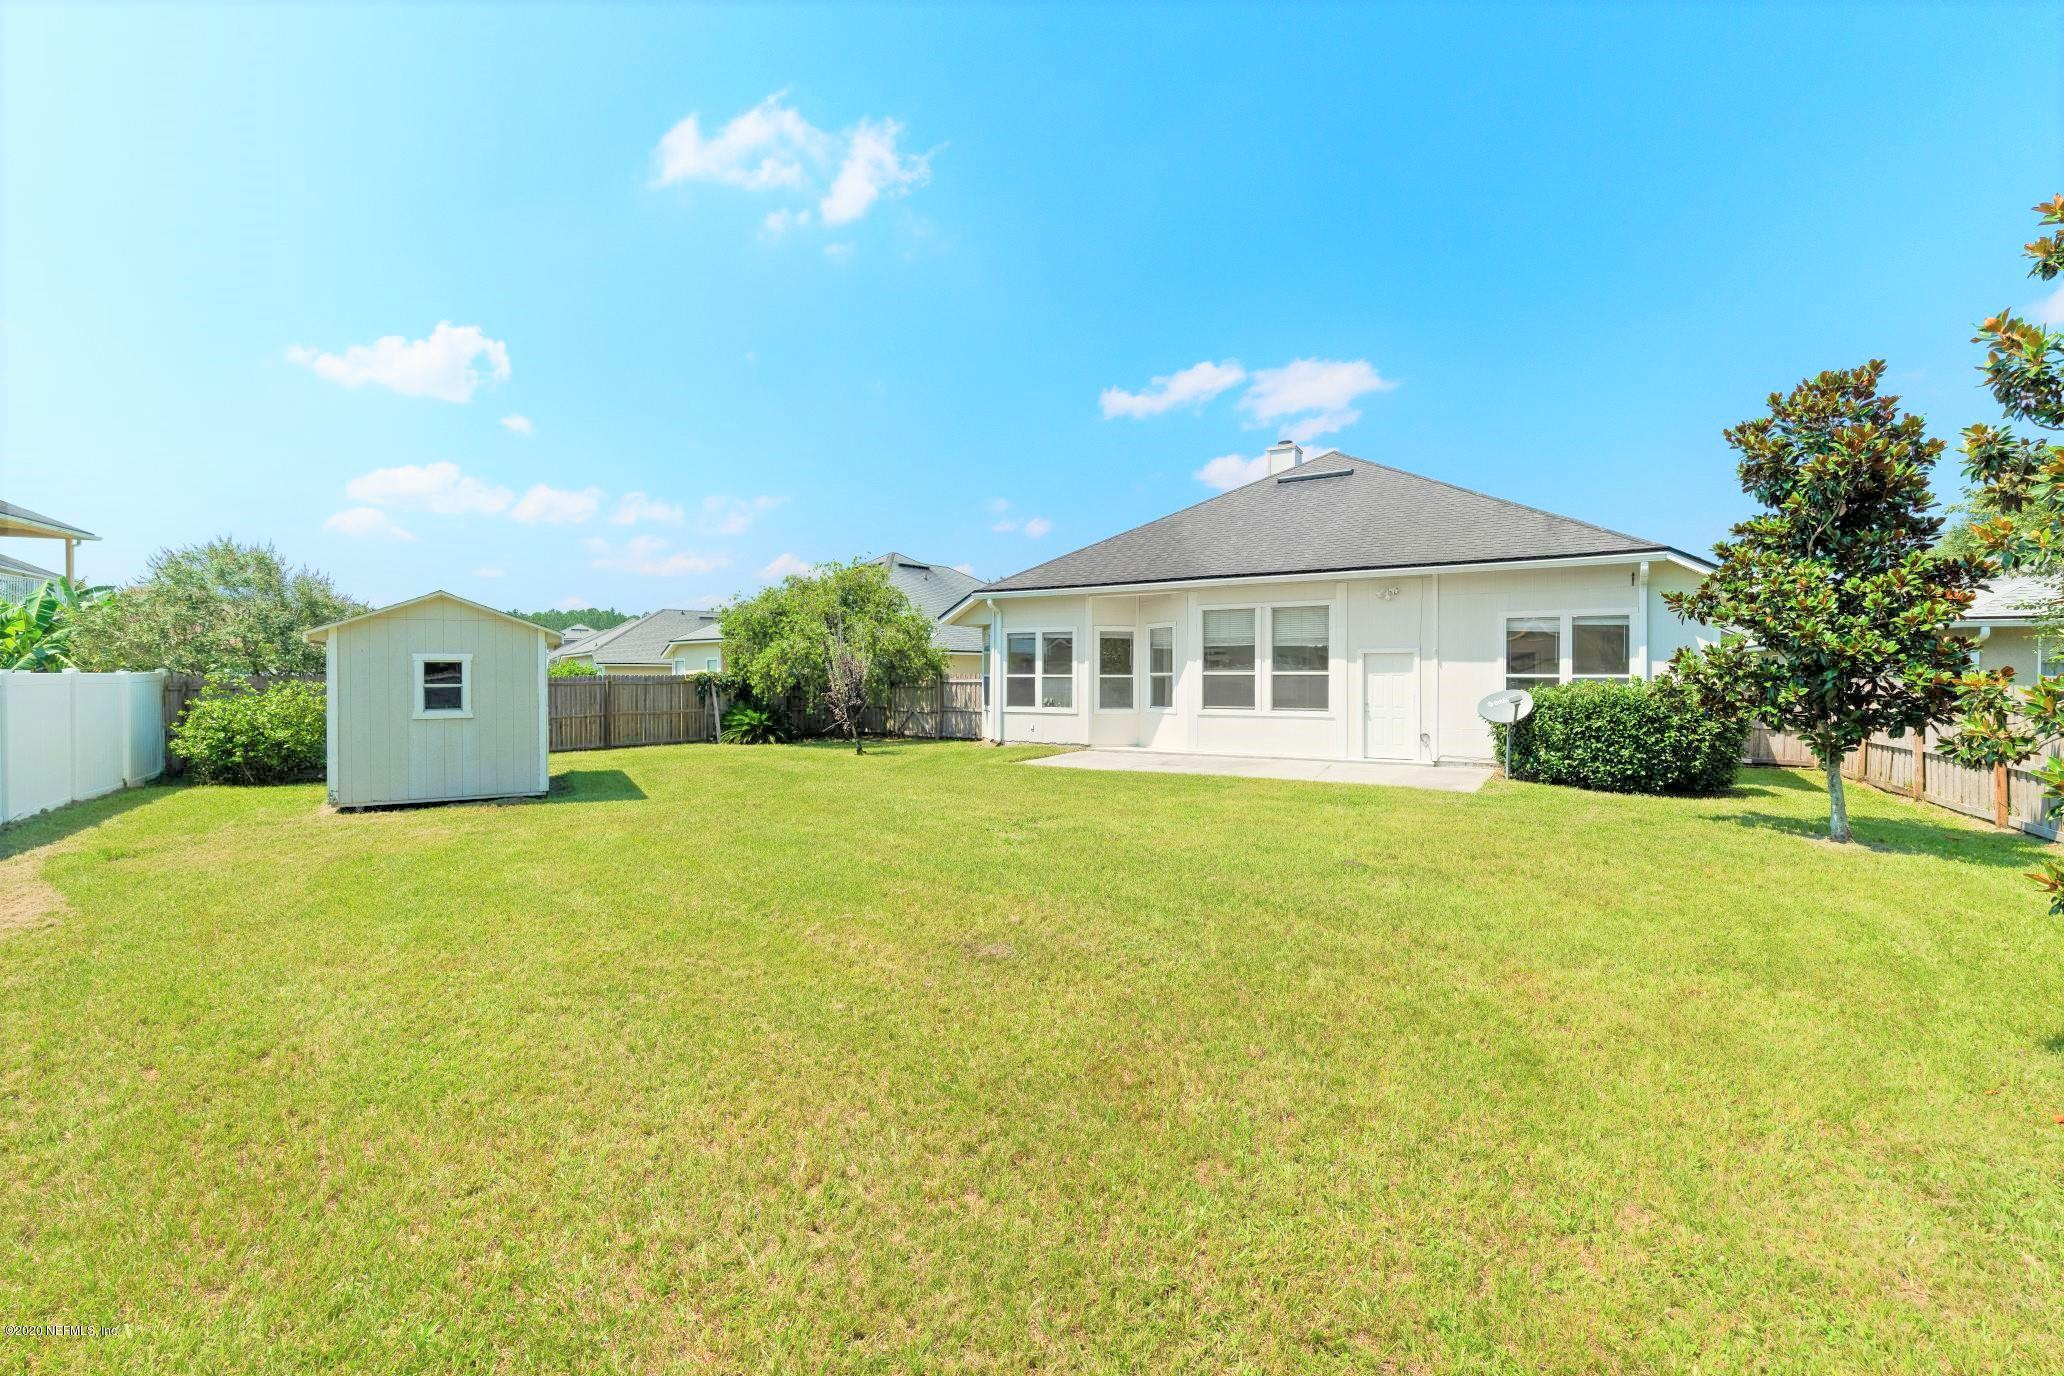 544 MILLHOUSE, ORANGE PARK, FLORIDA 32065, 4 Bedrooms Bedrooms, ,3 BathroomsBathrooms,Residential,For sale,MILLHOUSE,1065715